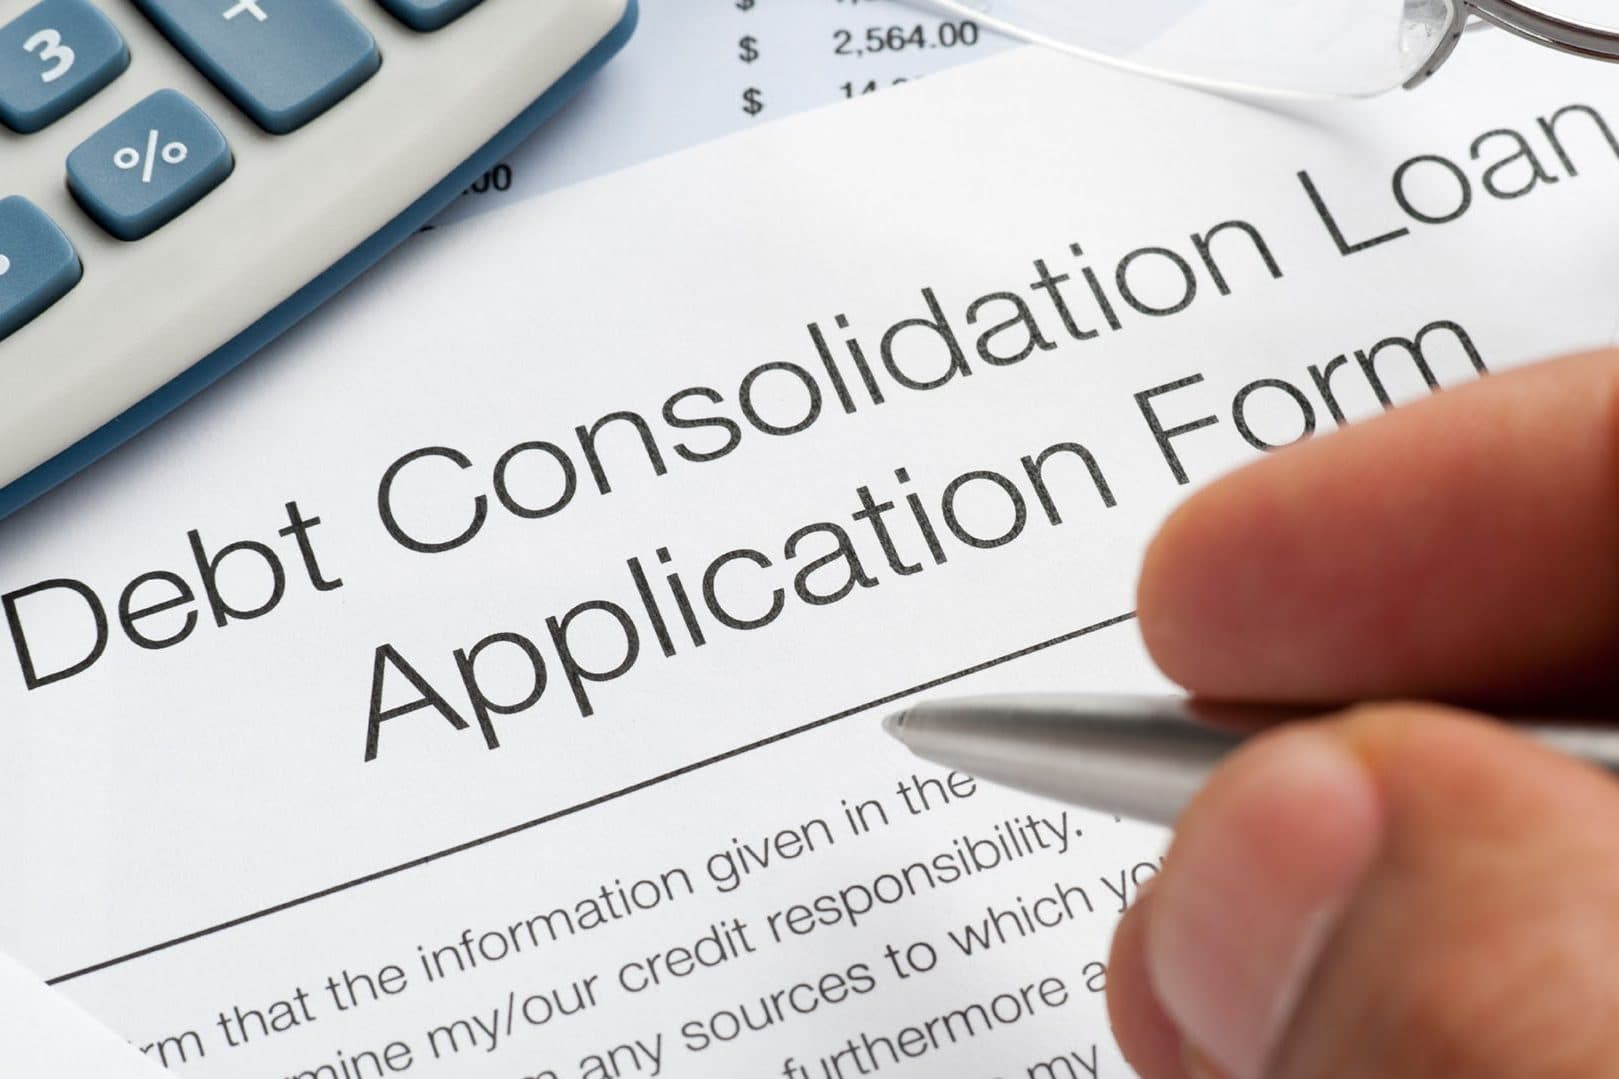 How does debt consolidation work